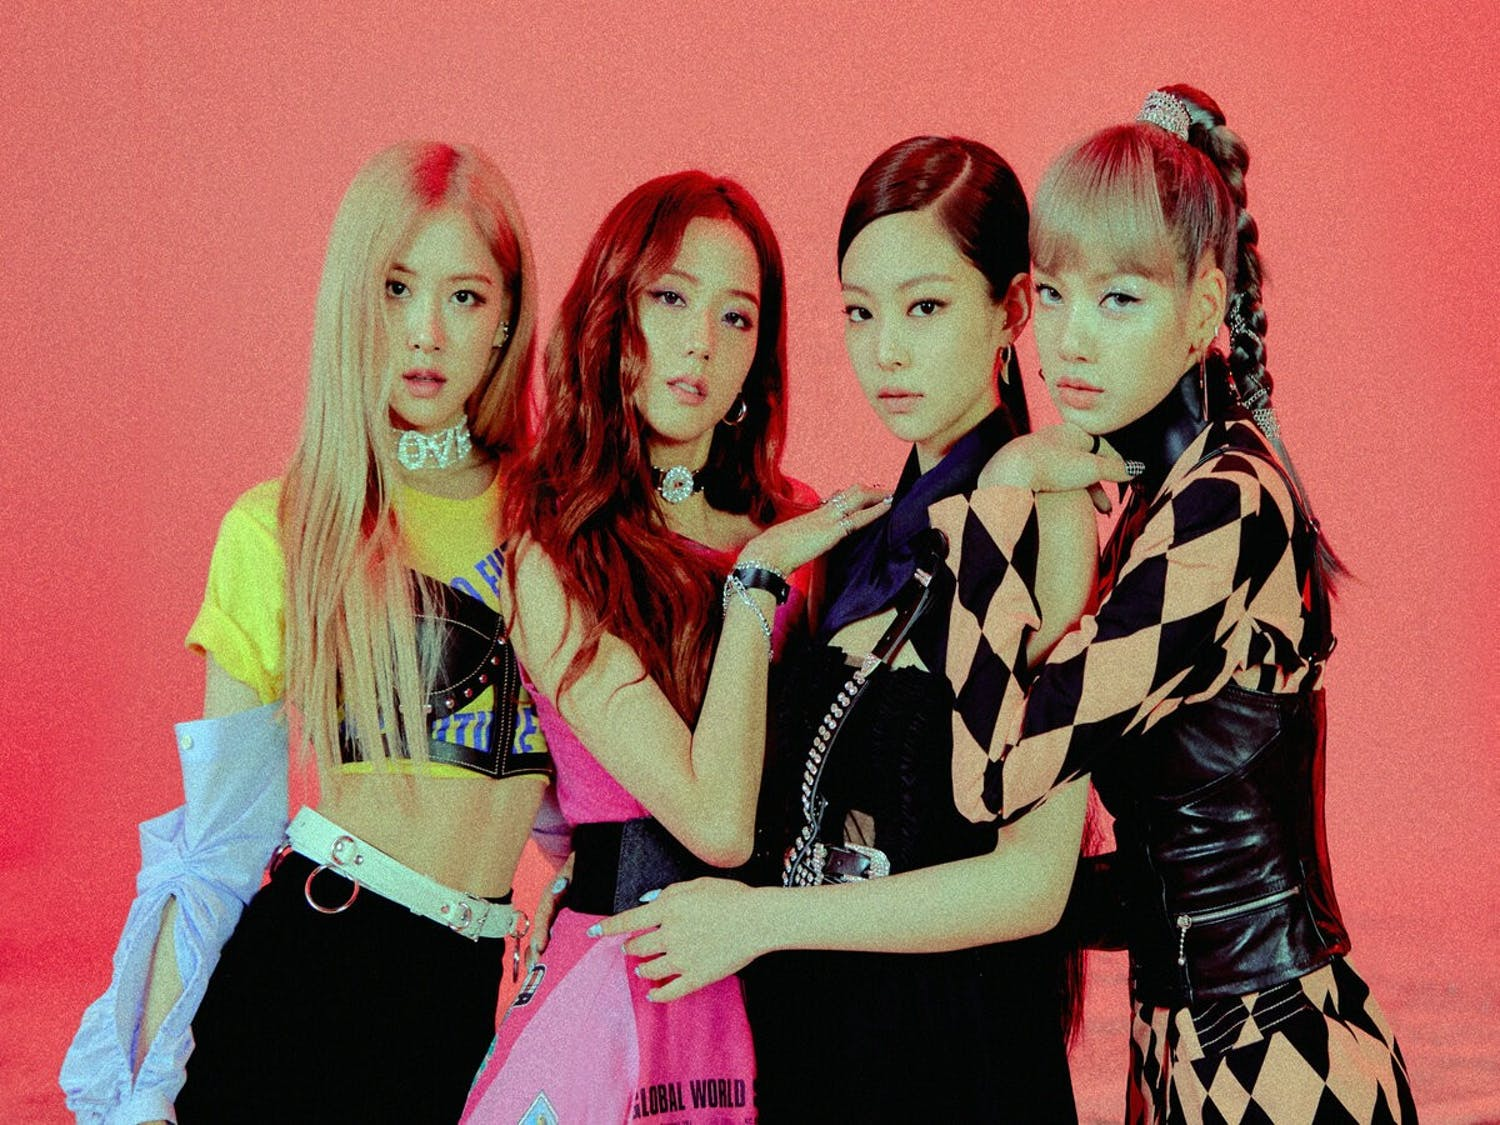 BLACKPINK may be one of the biggest K-pop groups in the world, but their new Netflix documentary is a personal affair that thrives on humanity and intimacy.